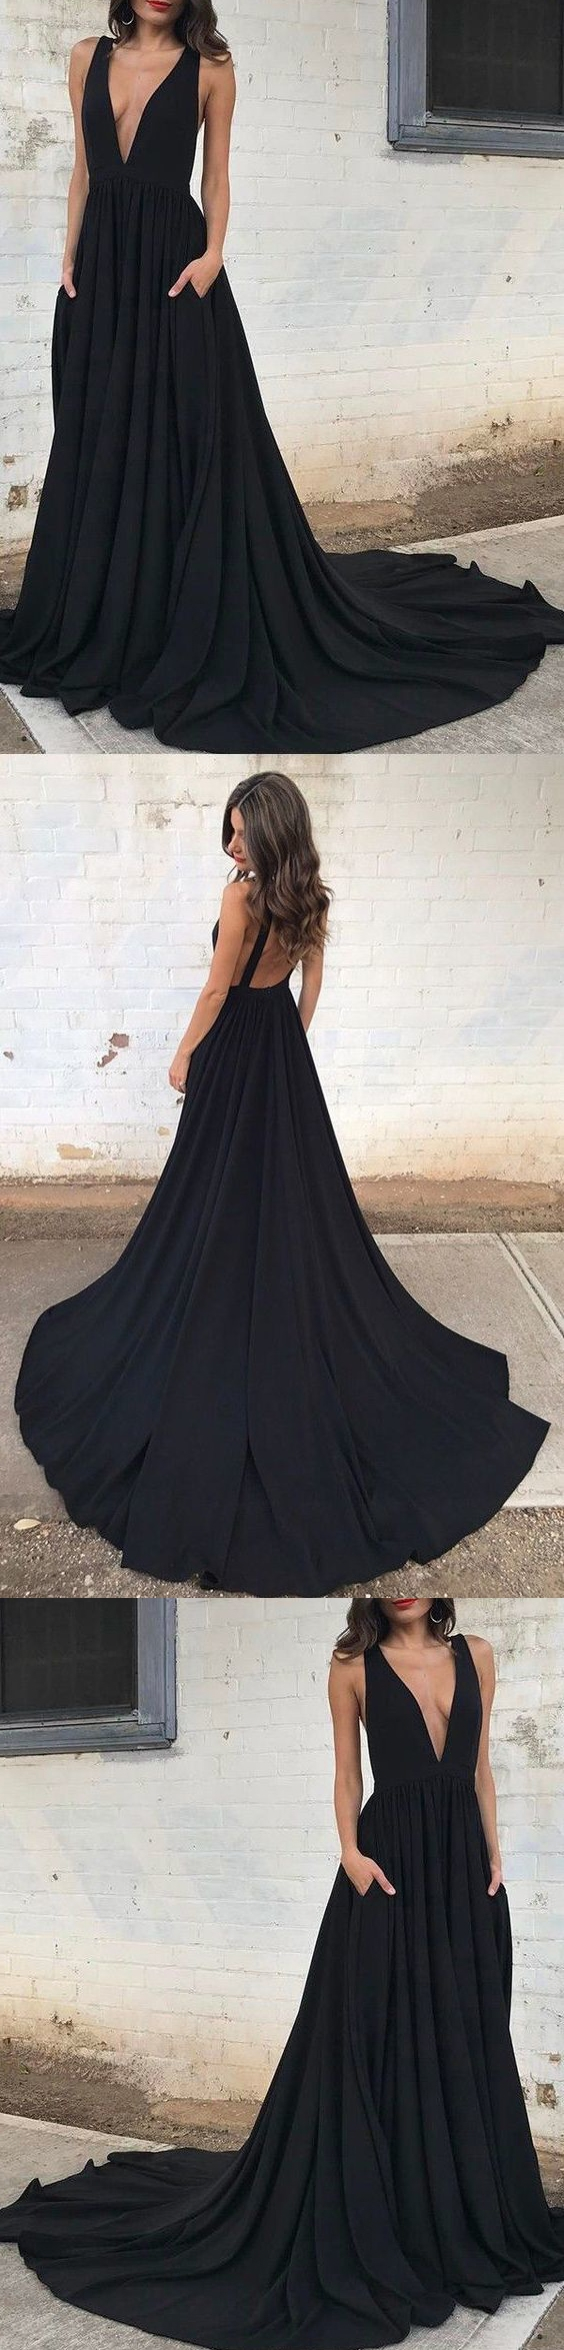 Black prom dresses vneck sweepbrush train sexy cheap prom dress